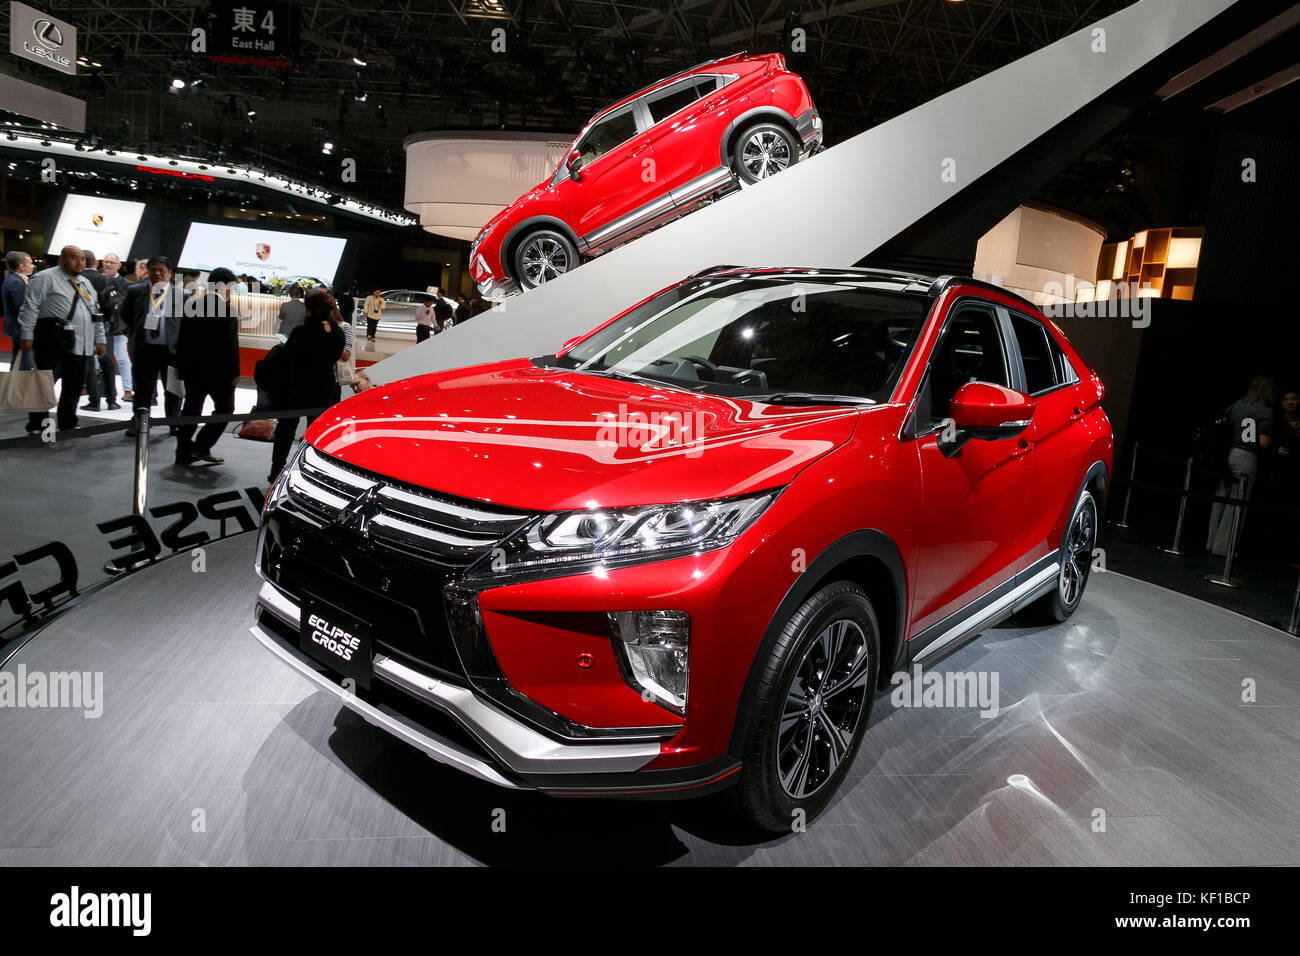 Tokyo, Japan. 25th Oct, 2017. Mitsubishi Motors ECLIPSE CROSS vehicle on display during the 45th Tokyo Motor Show 2017 in Tokyo Big Sight on October 25, ...